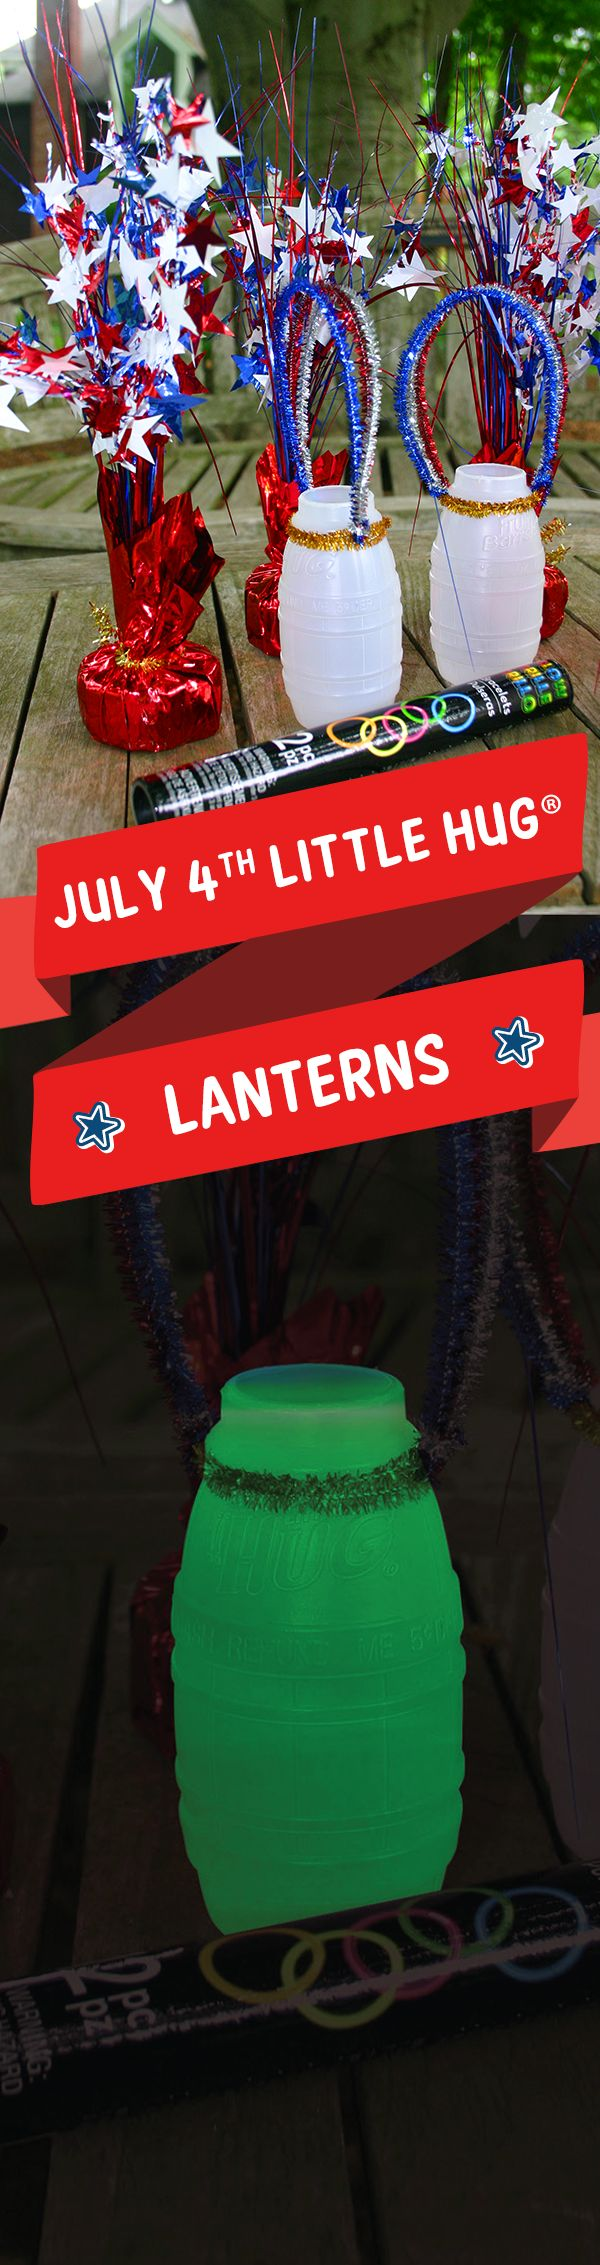 Wash and dry empty Little Hug Fruit Barrels®. Punch holes on opposite sides of the top and make handles from pipe cleaners. Place glow sticks inside the barrels. Use as July 4th table decorations, or let the kids carry them to your local fireworks display.